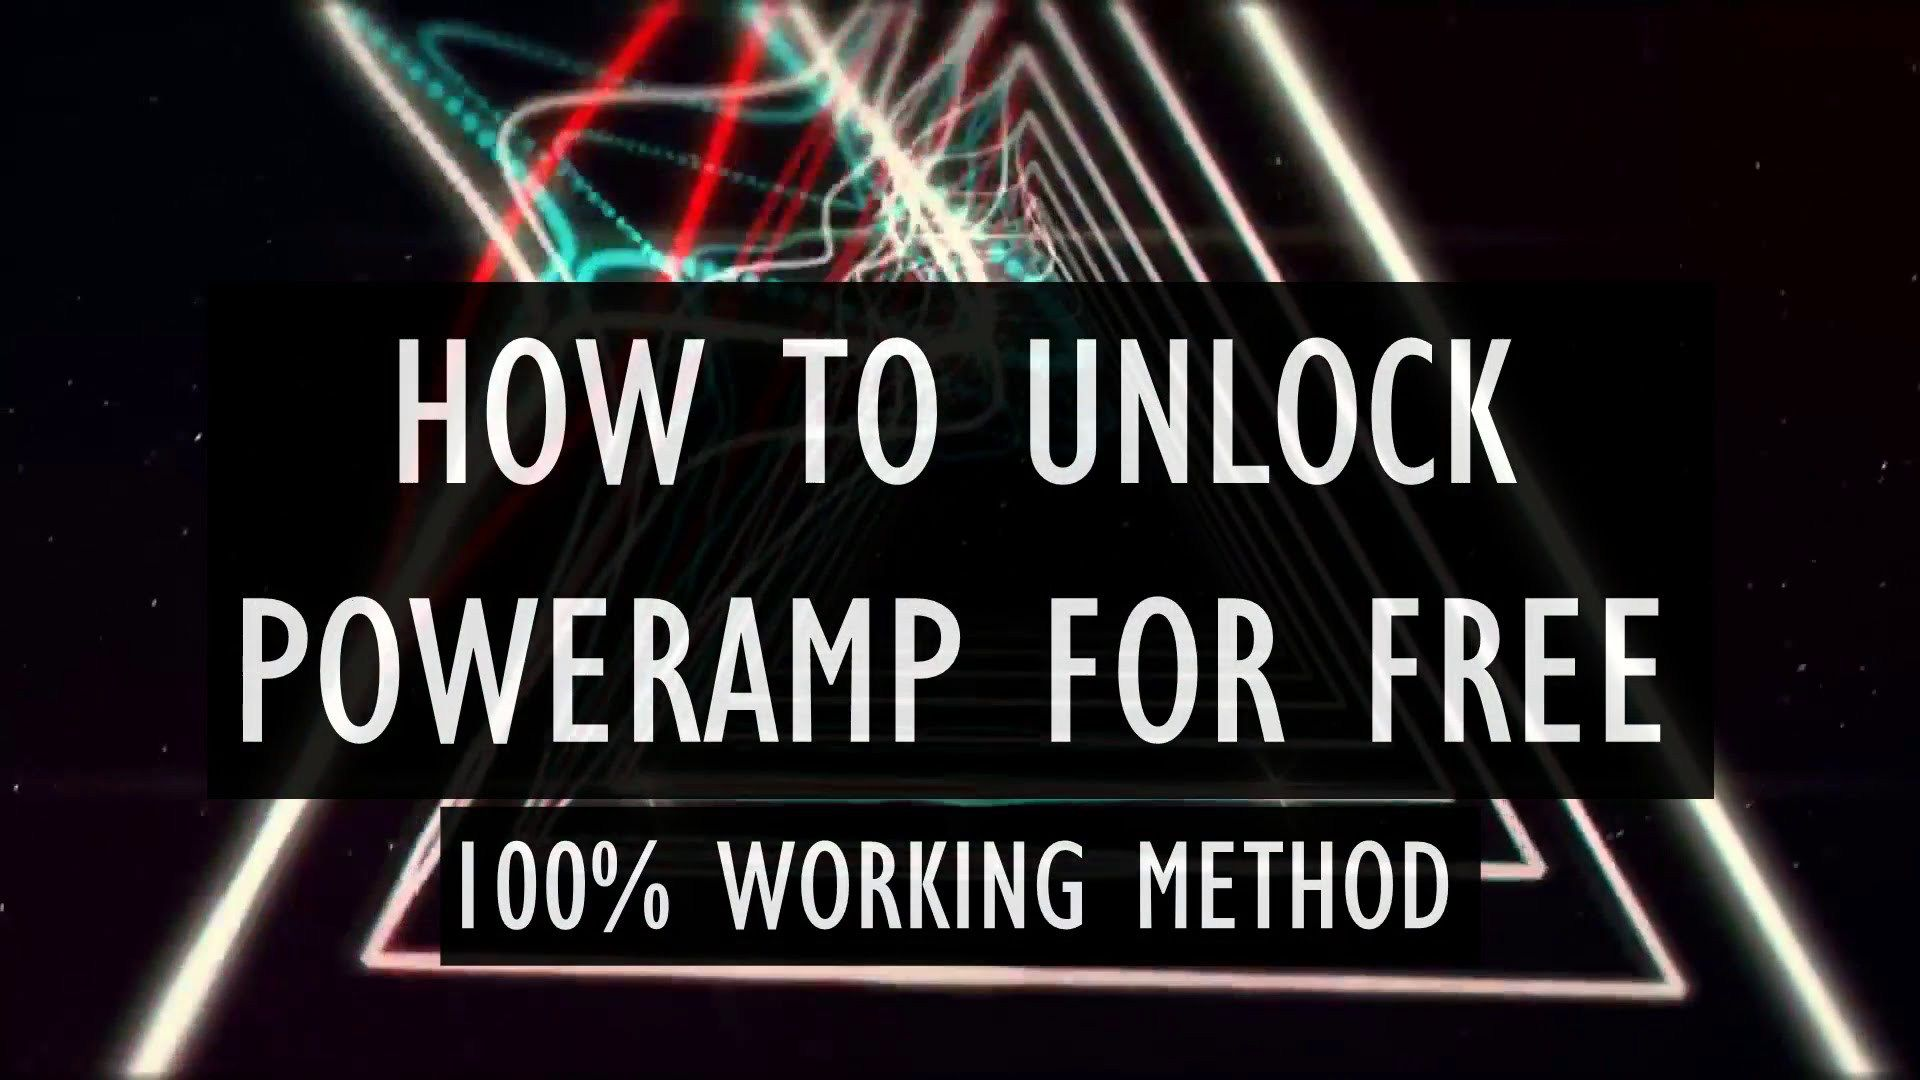 How to unlock poweramp full version by lucky patcher | Unlock